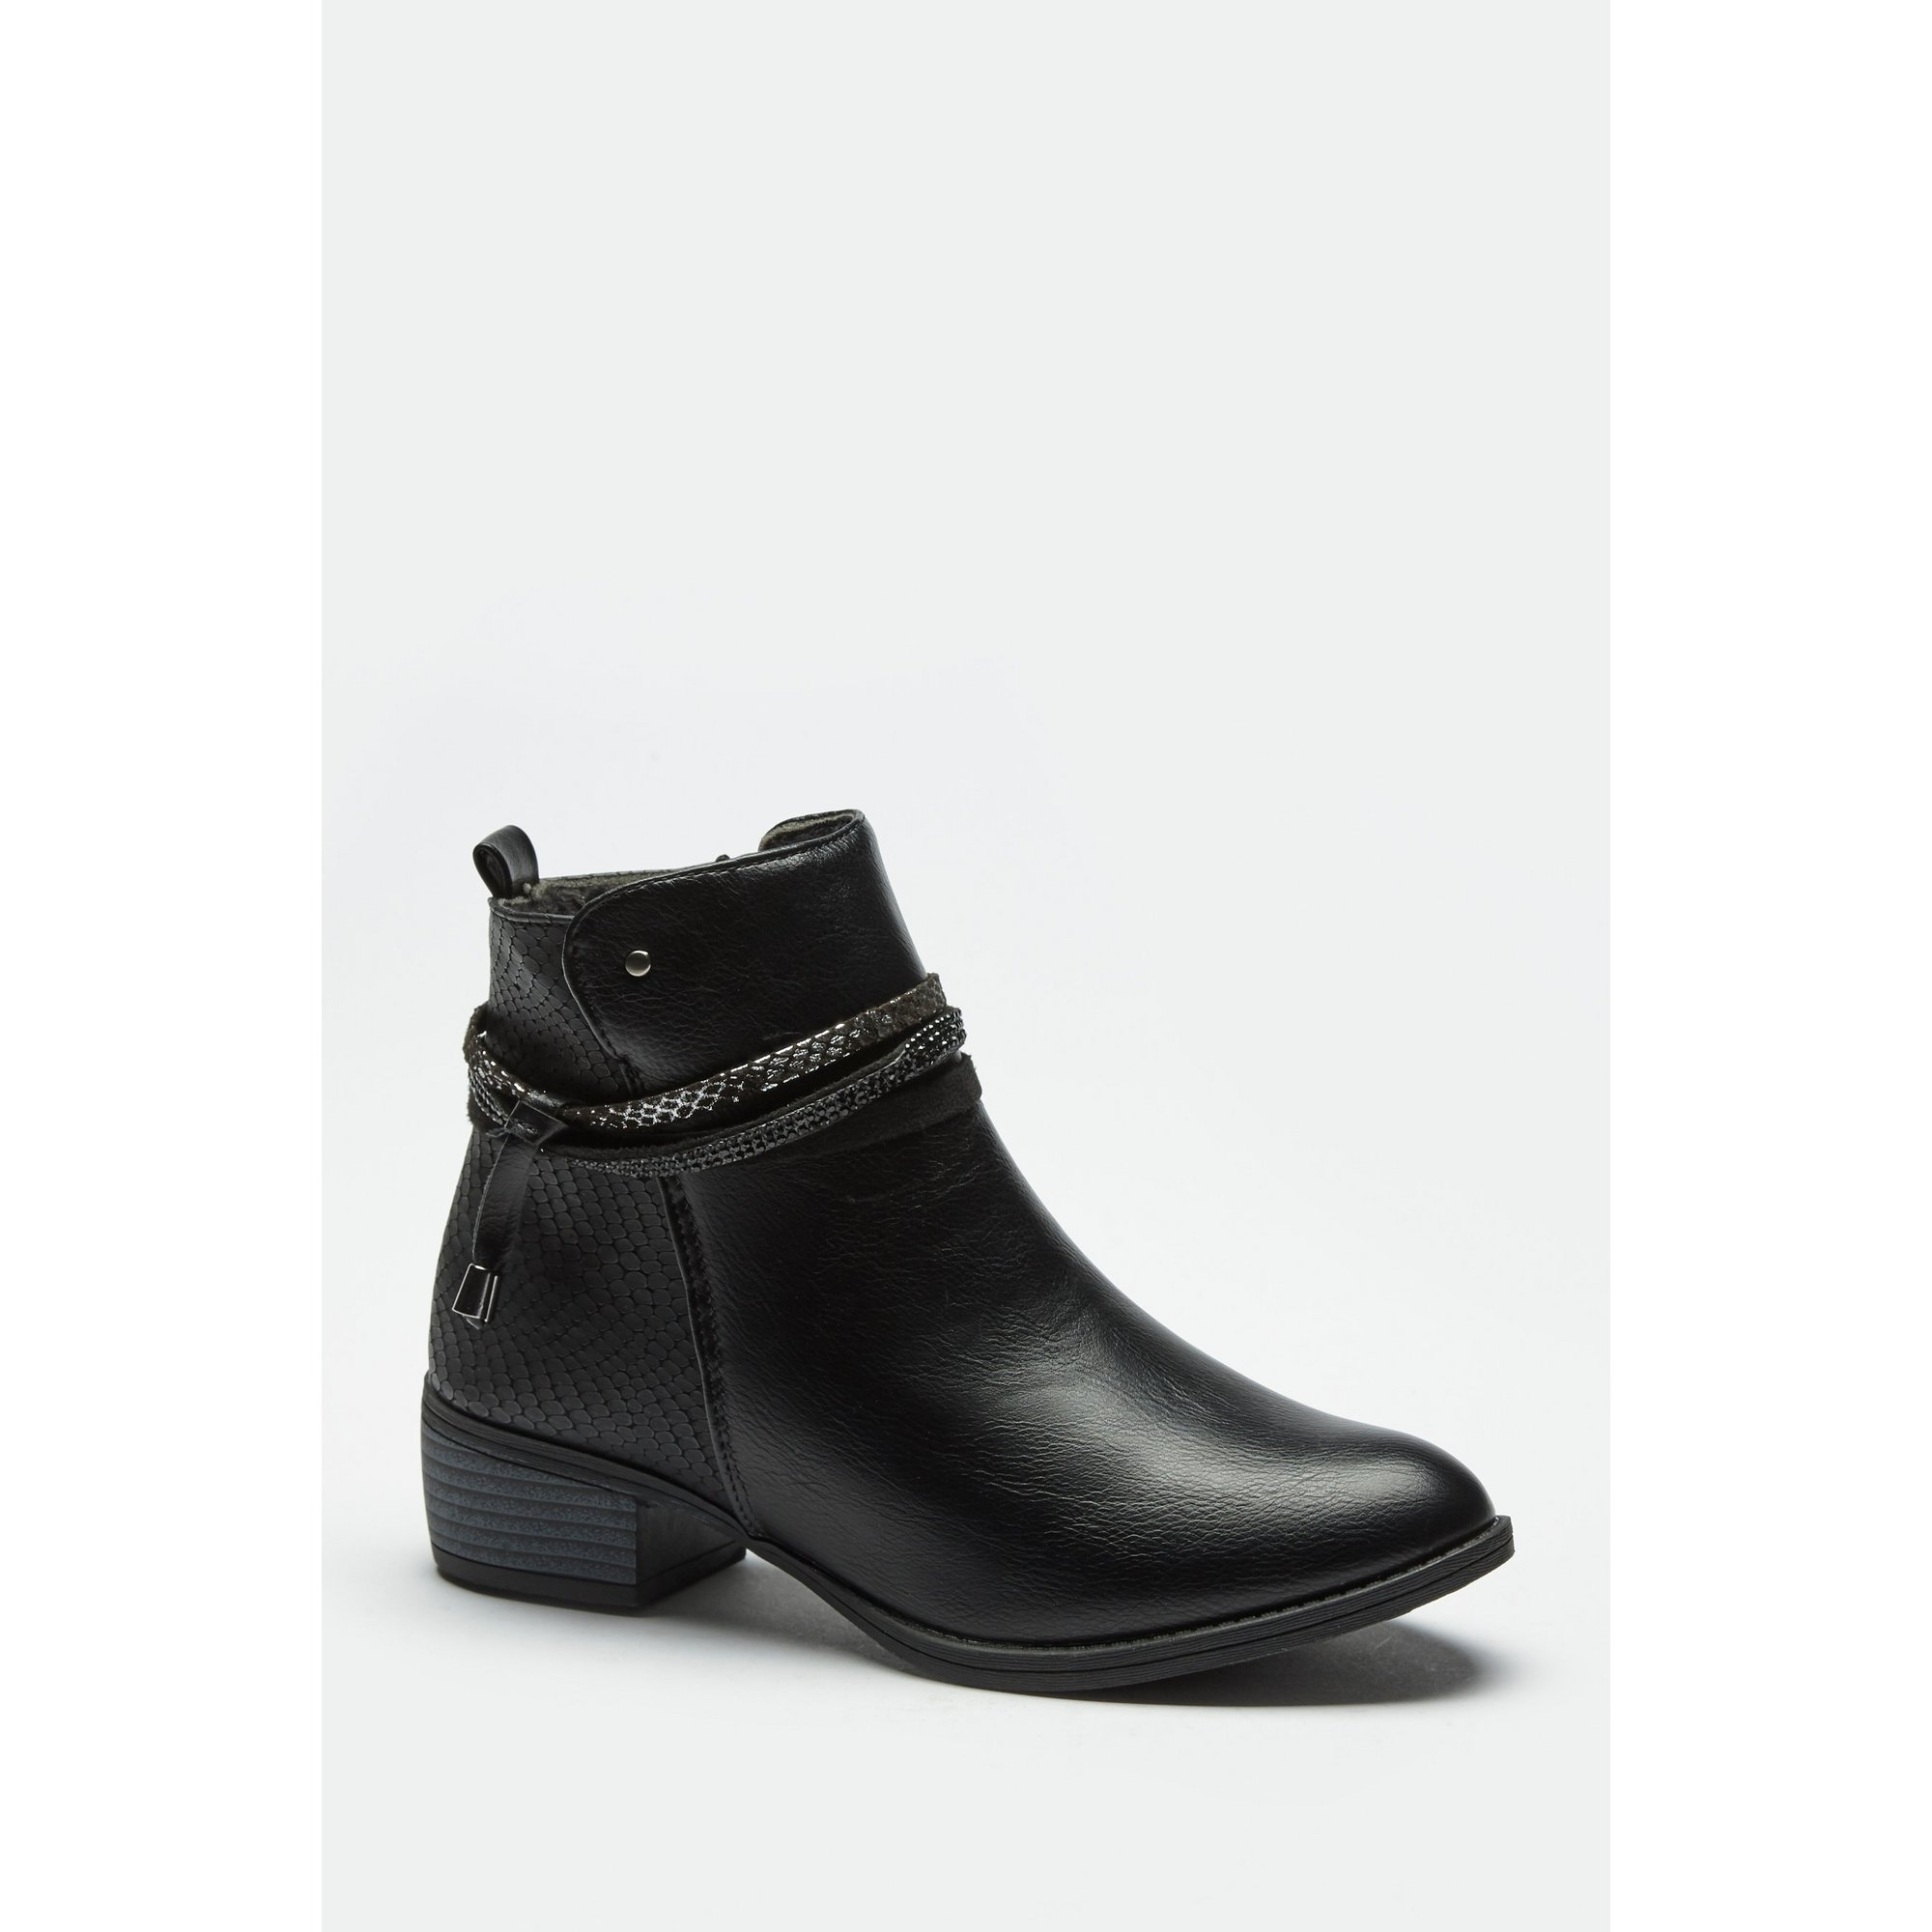 Image of Comfort Plus PU Snake Tie Black Ankle Boots